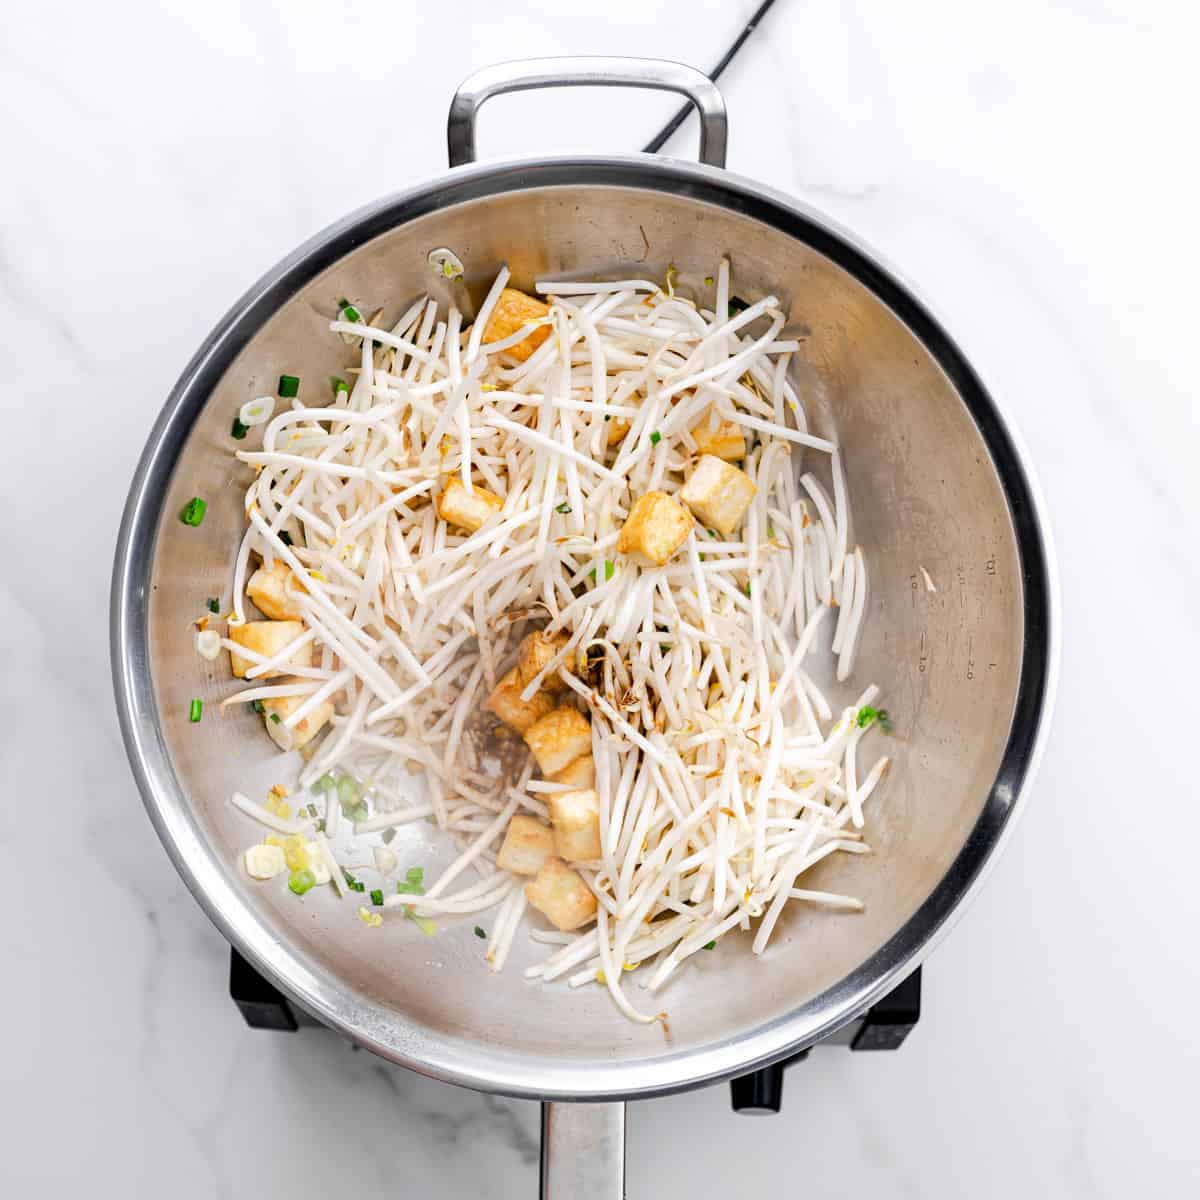 learn how to stir fry bean sprouts.